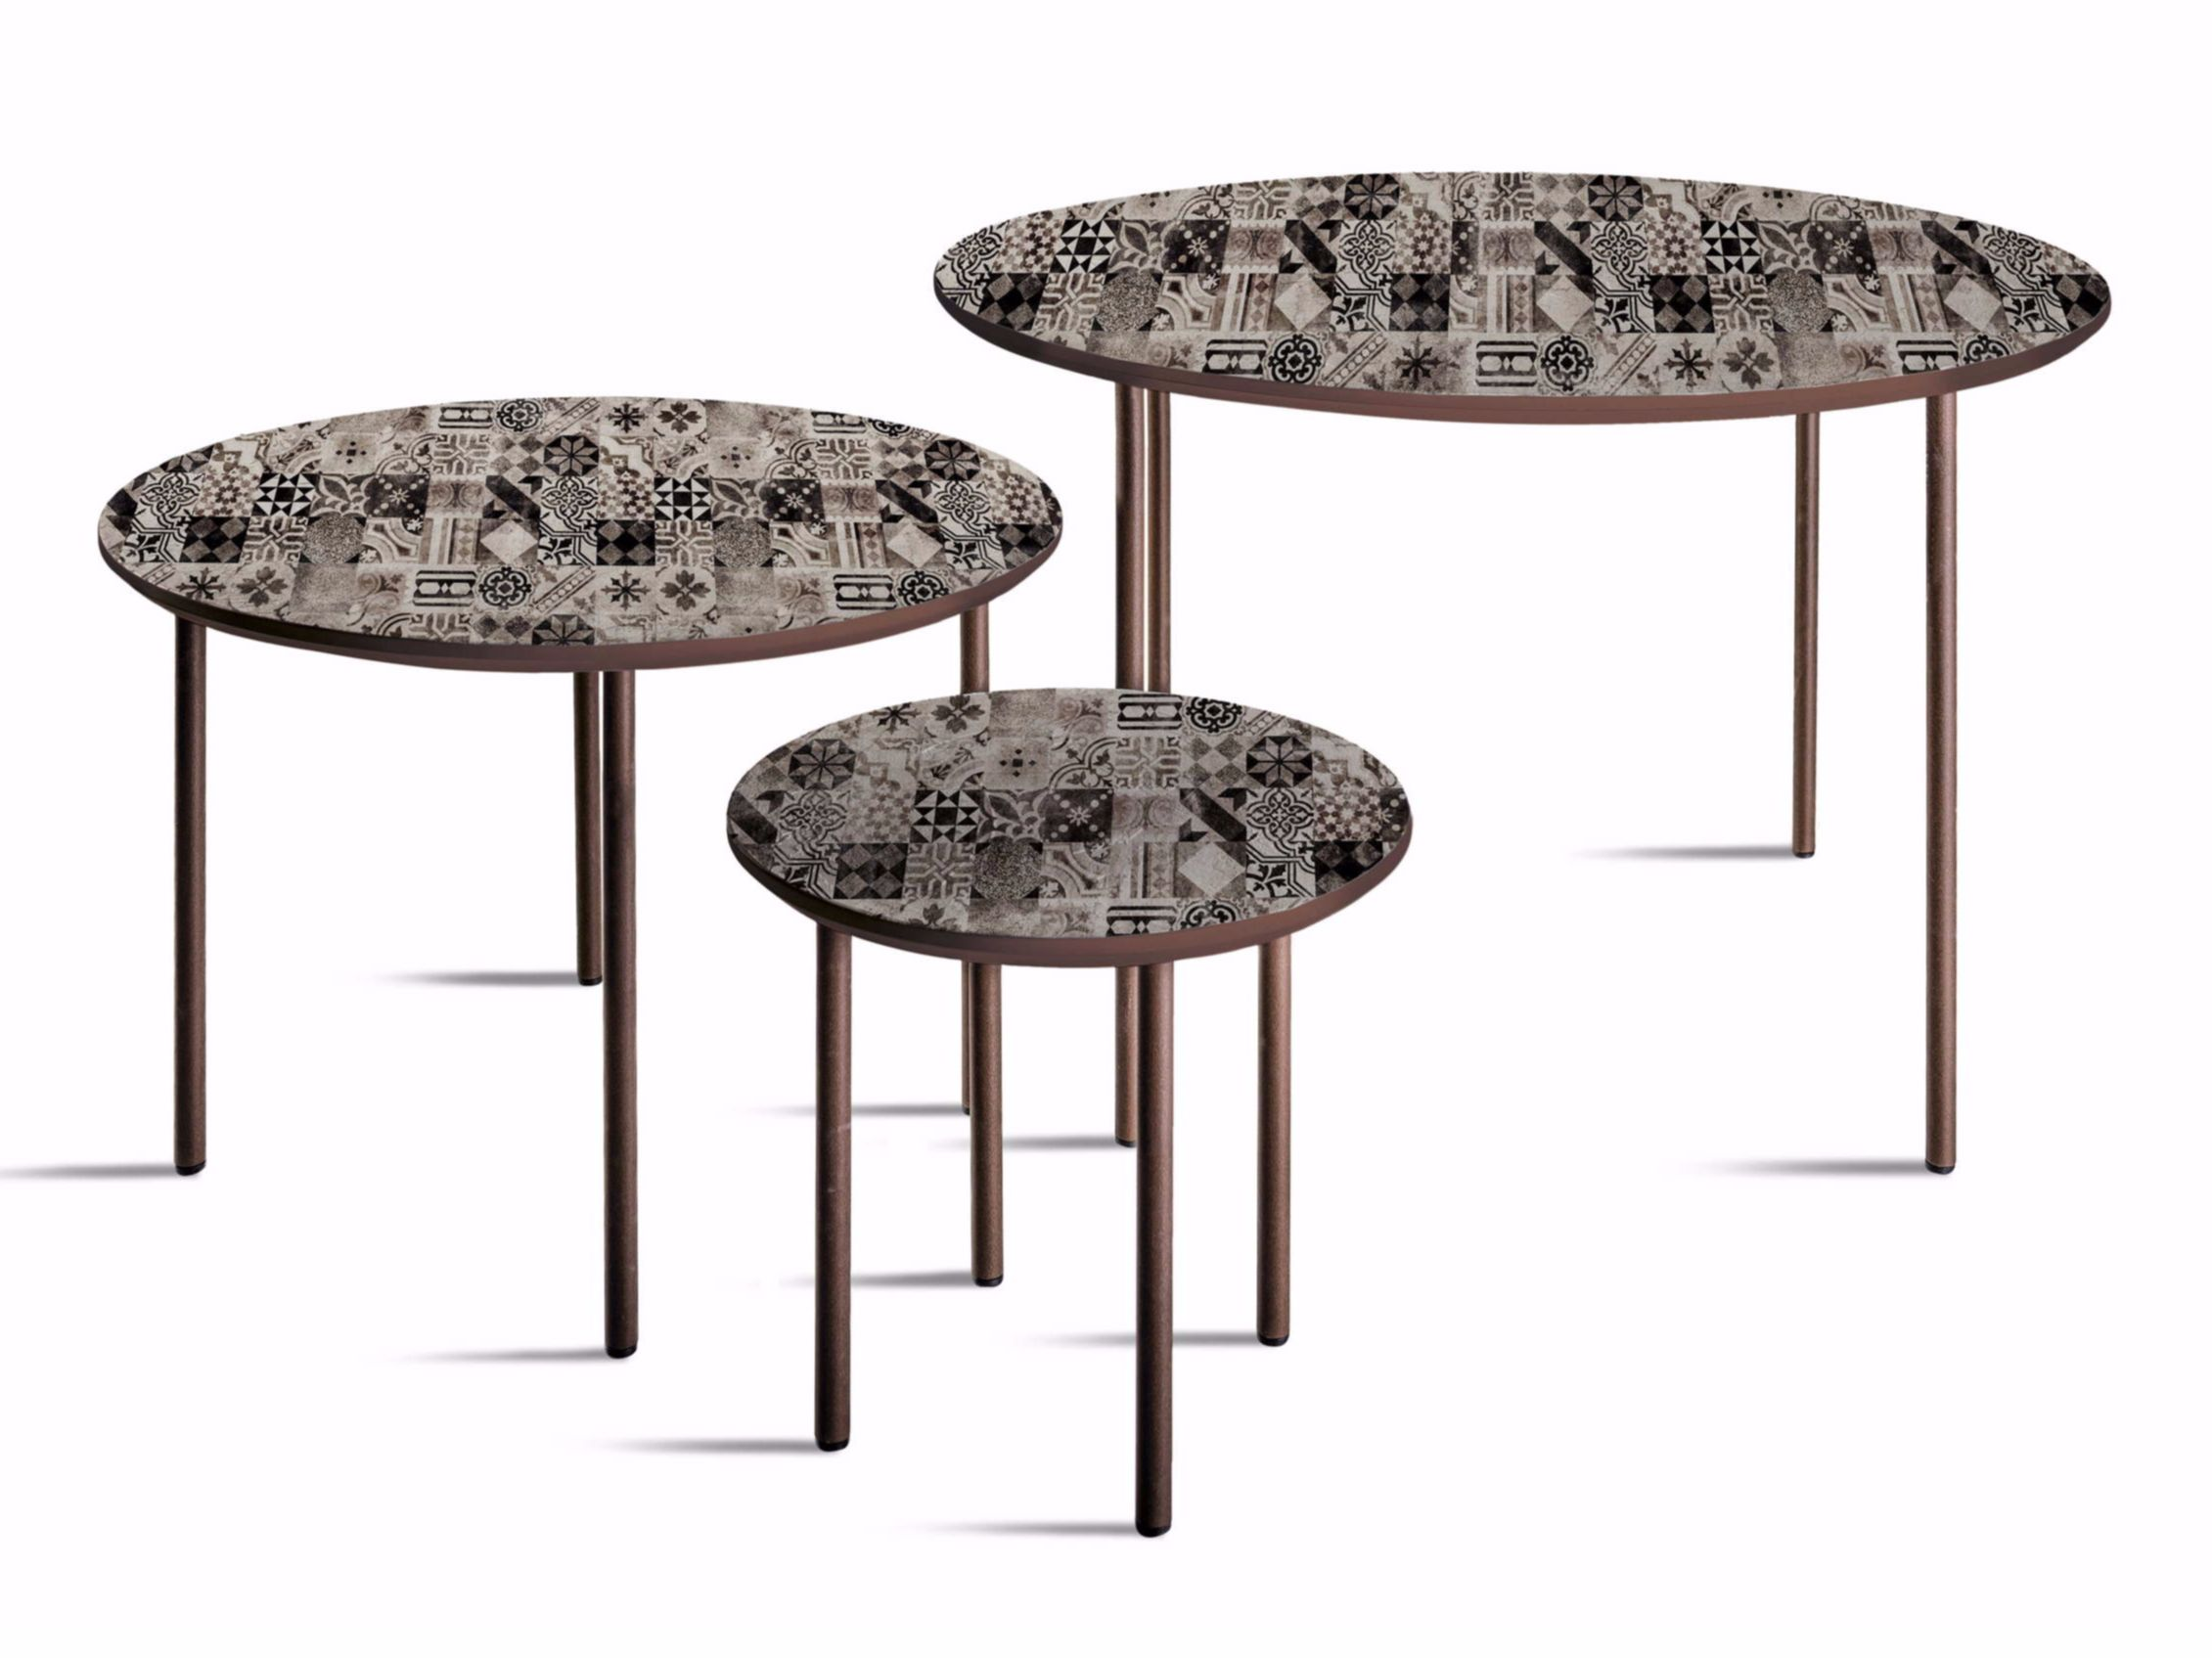 Round Mdf Coffee Table T 32 52 72 Crazy Home Furniture Collection By Momenti Di Bagnai Matteo Coffee Table Table Furniture Collection [ 1695 x 2261 Pixel ]